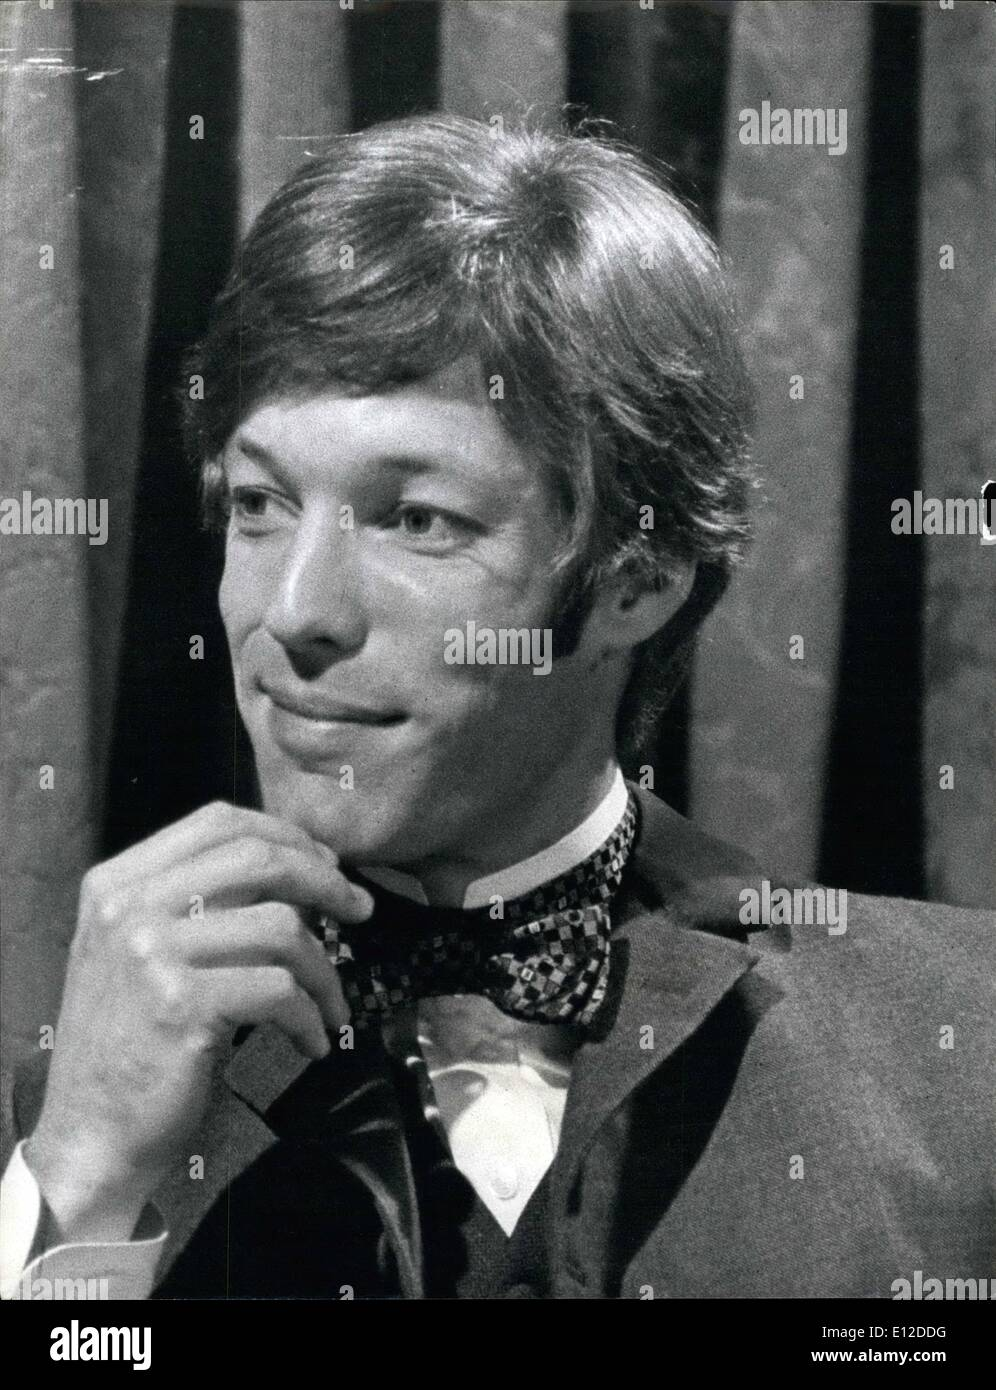 Dec. 19, 2011 - A Tonic for Dr. Kildare. It only takes a glance to diagnose that Richard Chamberlain is at last breaking away from the clean-cut, short-haired, all –American boy image of his Dr. Kildare series. His hair, once so neat now curls slightly on his collar. the crisp white coat is replaced by Regency style clothes. The reason, Richard Chamberlain is playing in a six-part B.B.C.-2 television series, 'Portrait of a Lady' - Stock Image